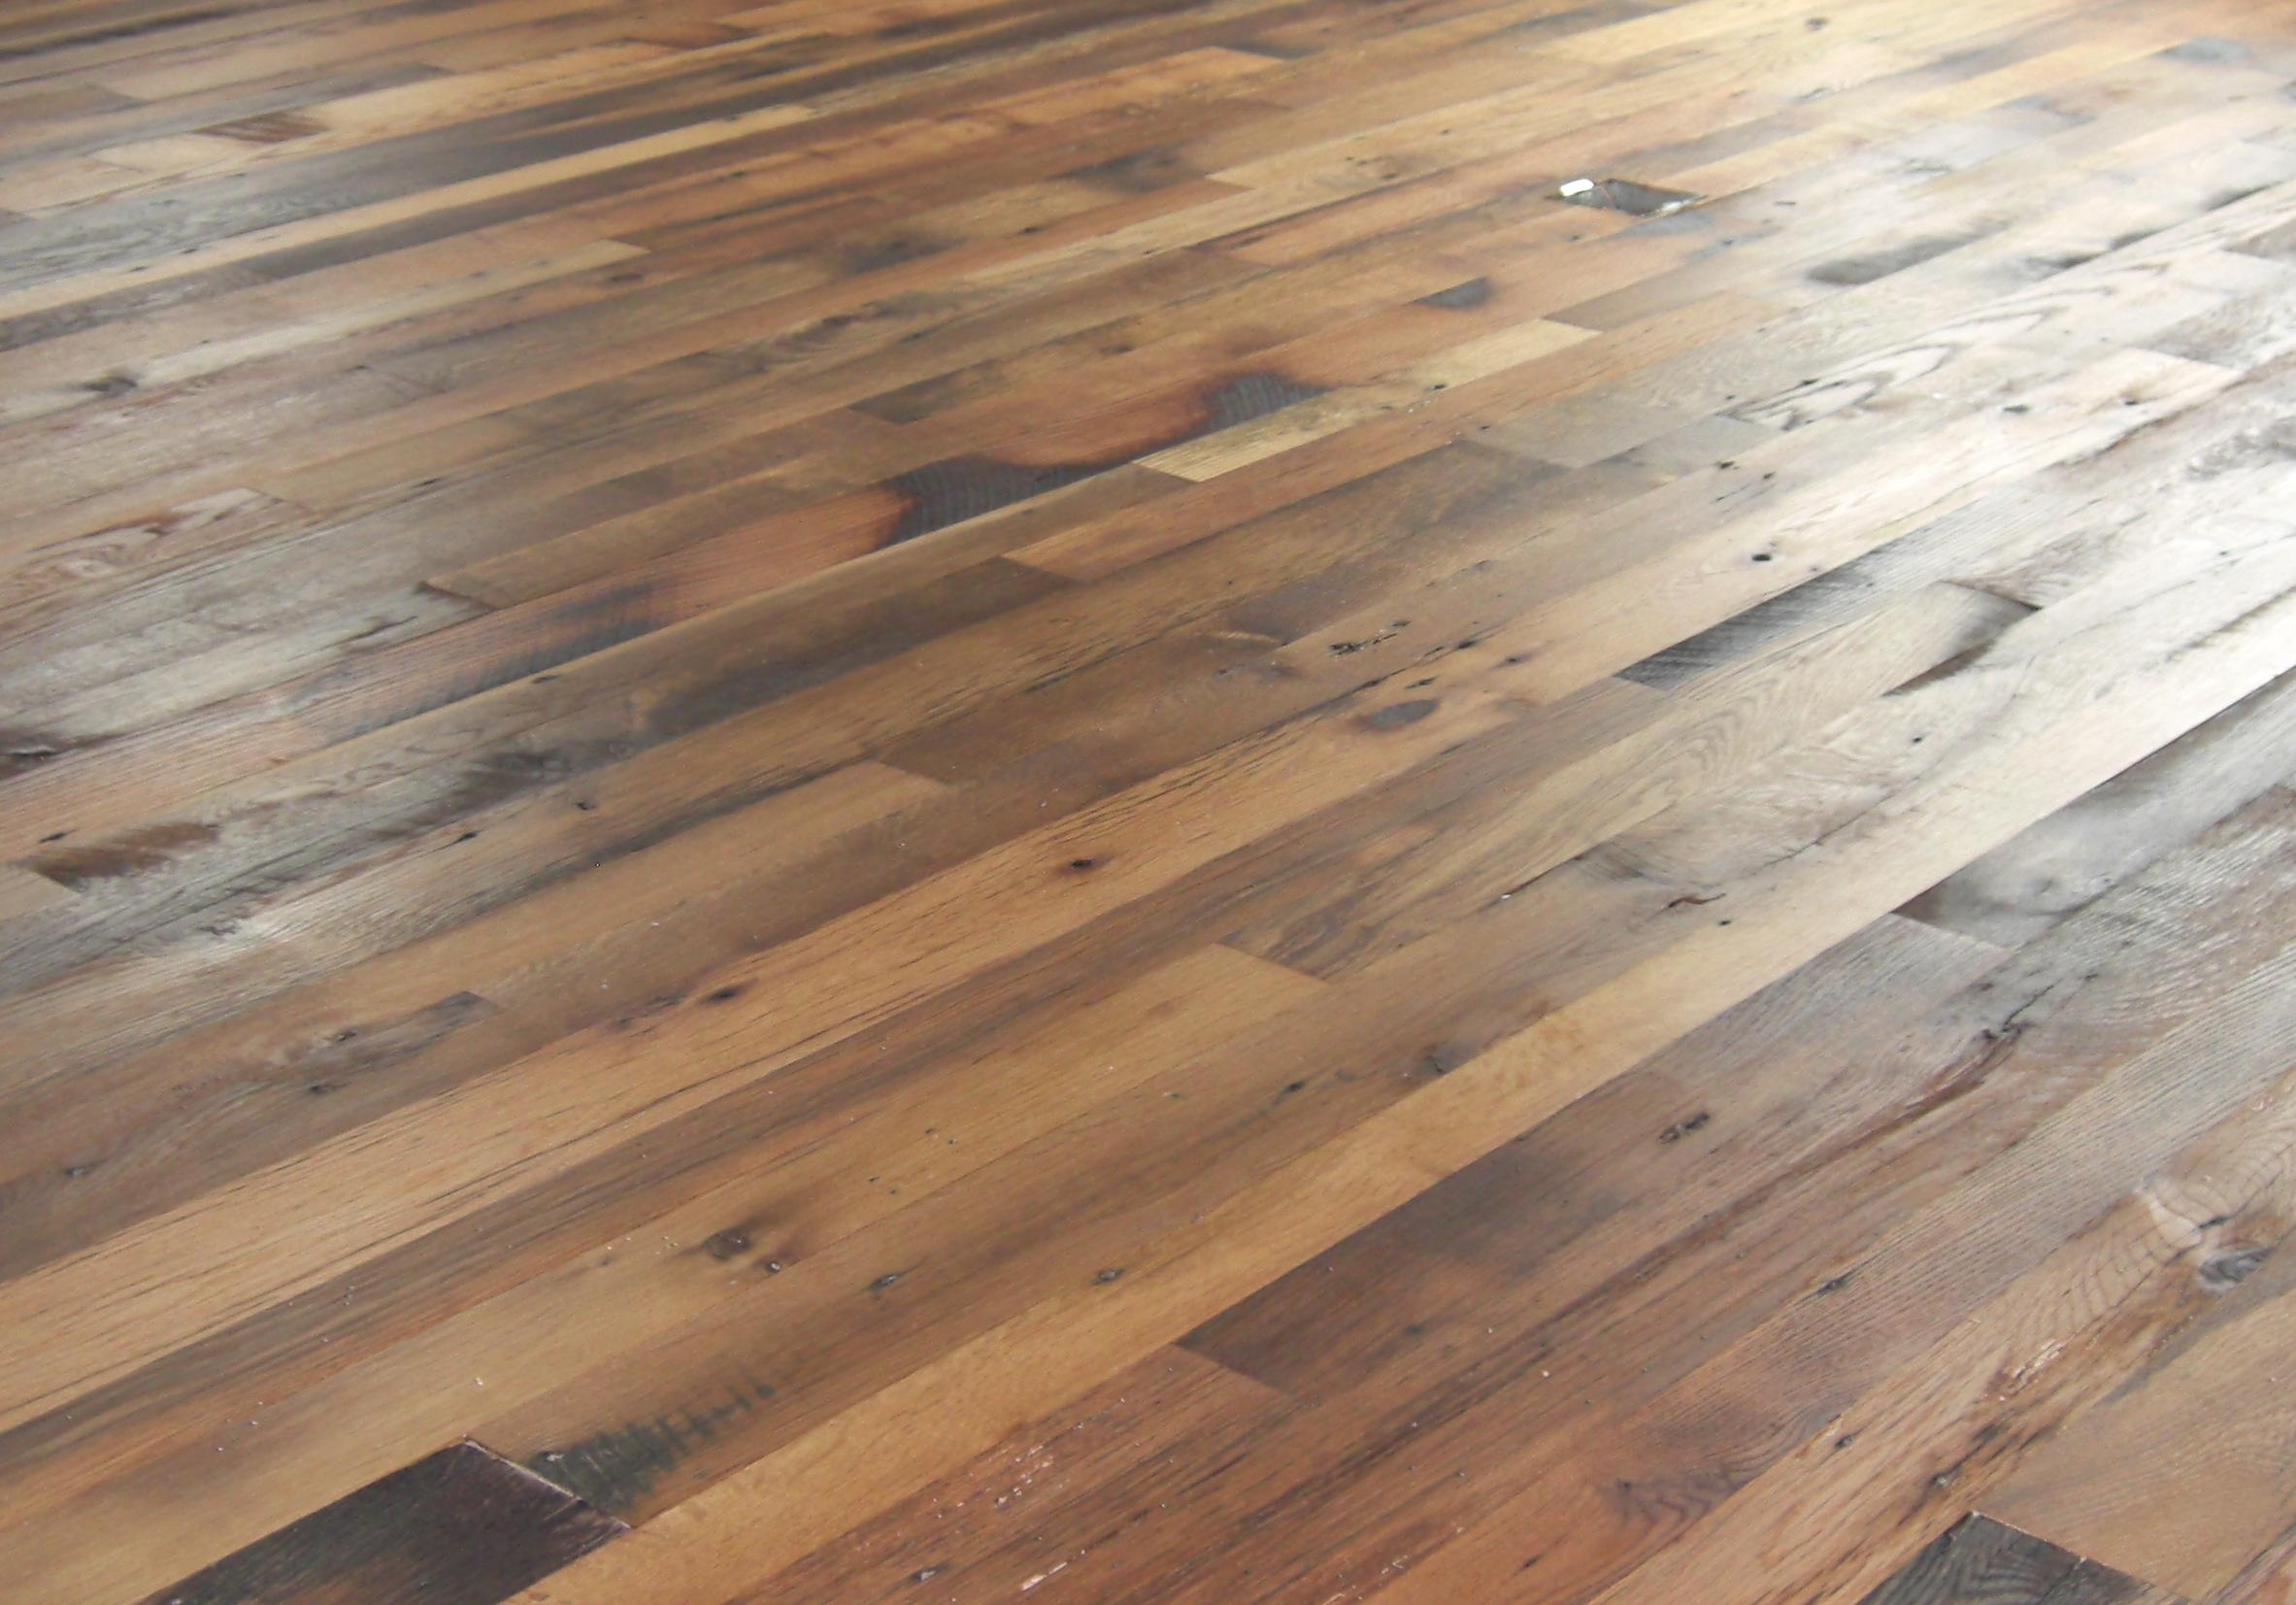 laminate floor sanding flooring environmentally and vancouver areas friendly all hardwood we of refinishing serving provide westminster dust wood finishes free the birch new engineered